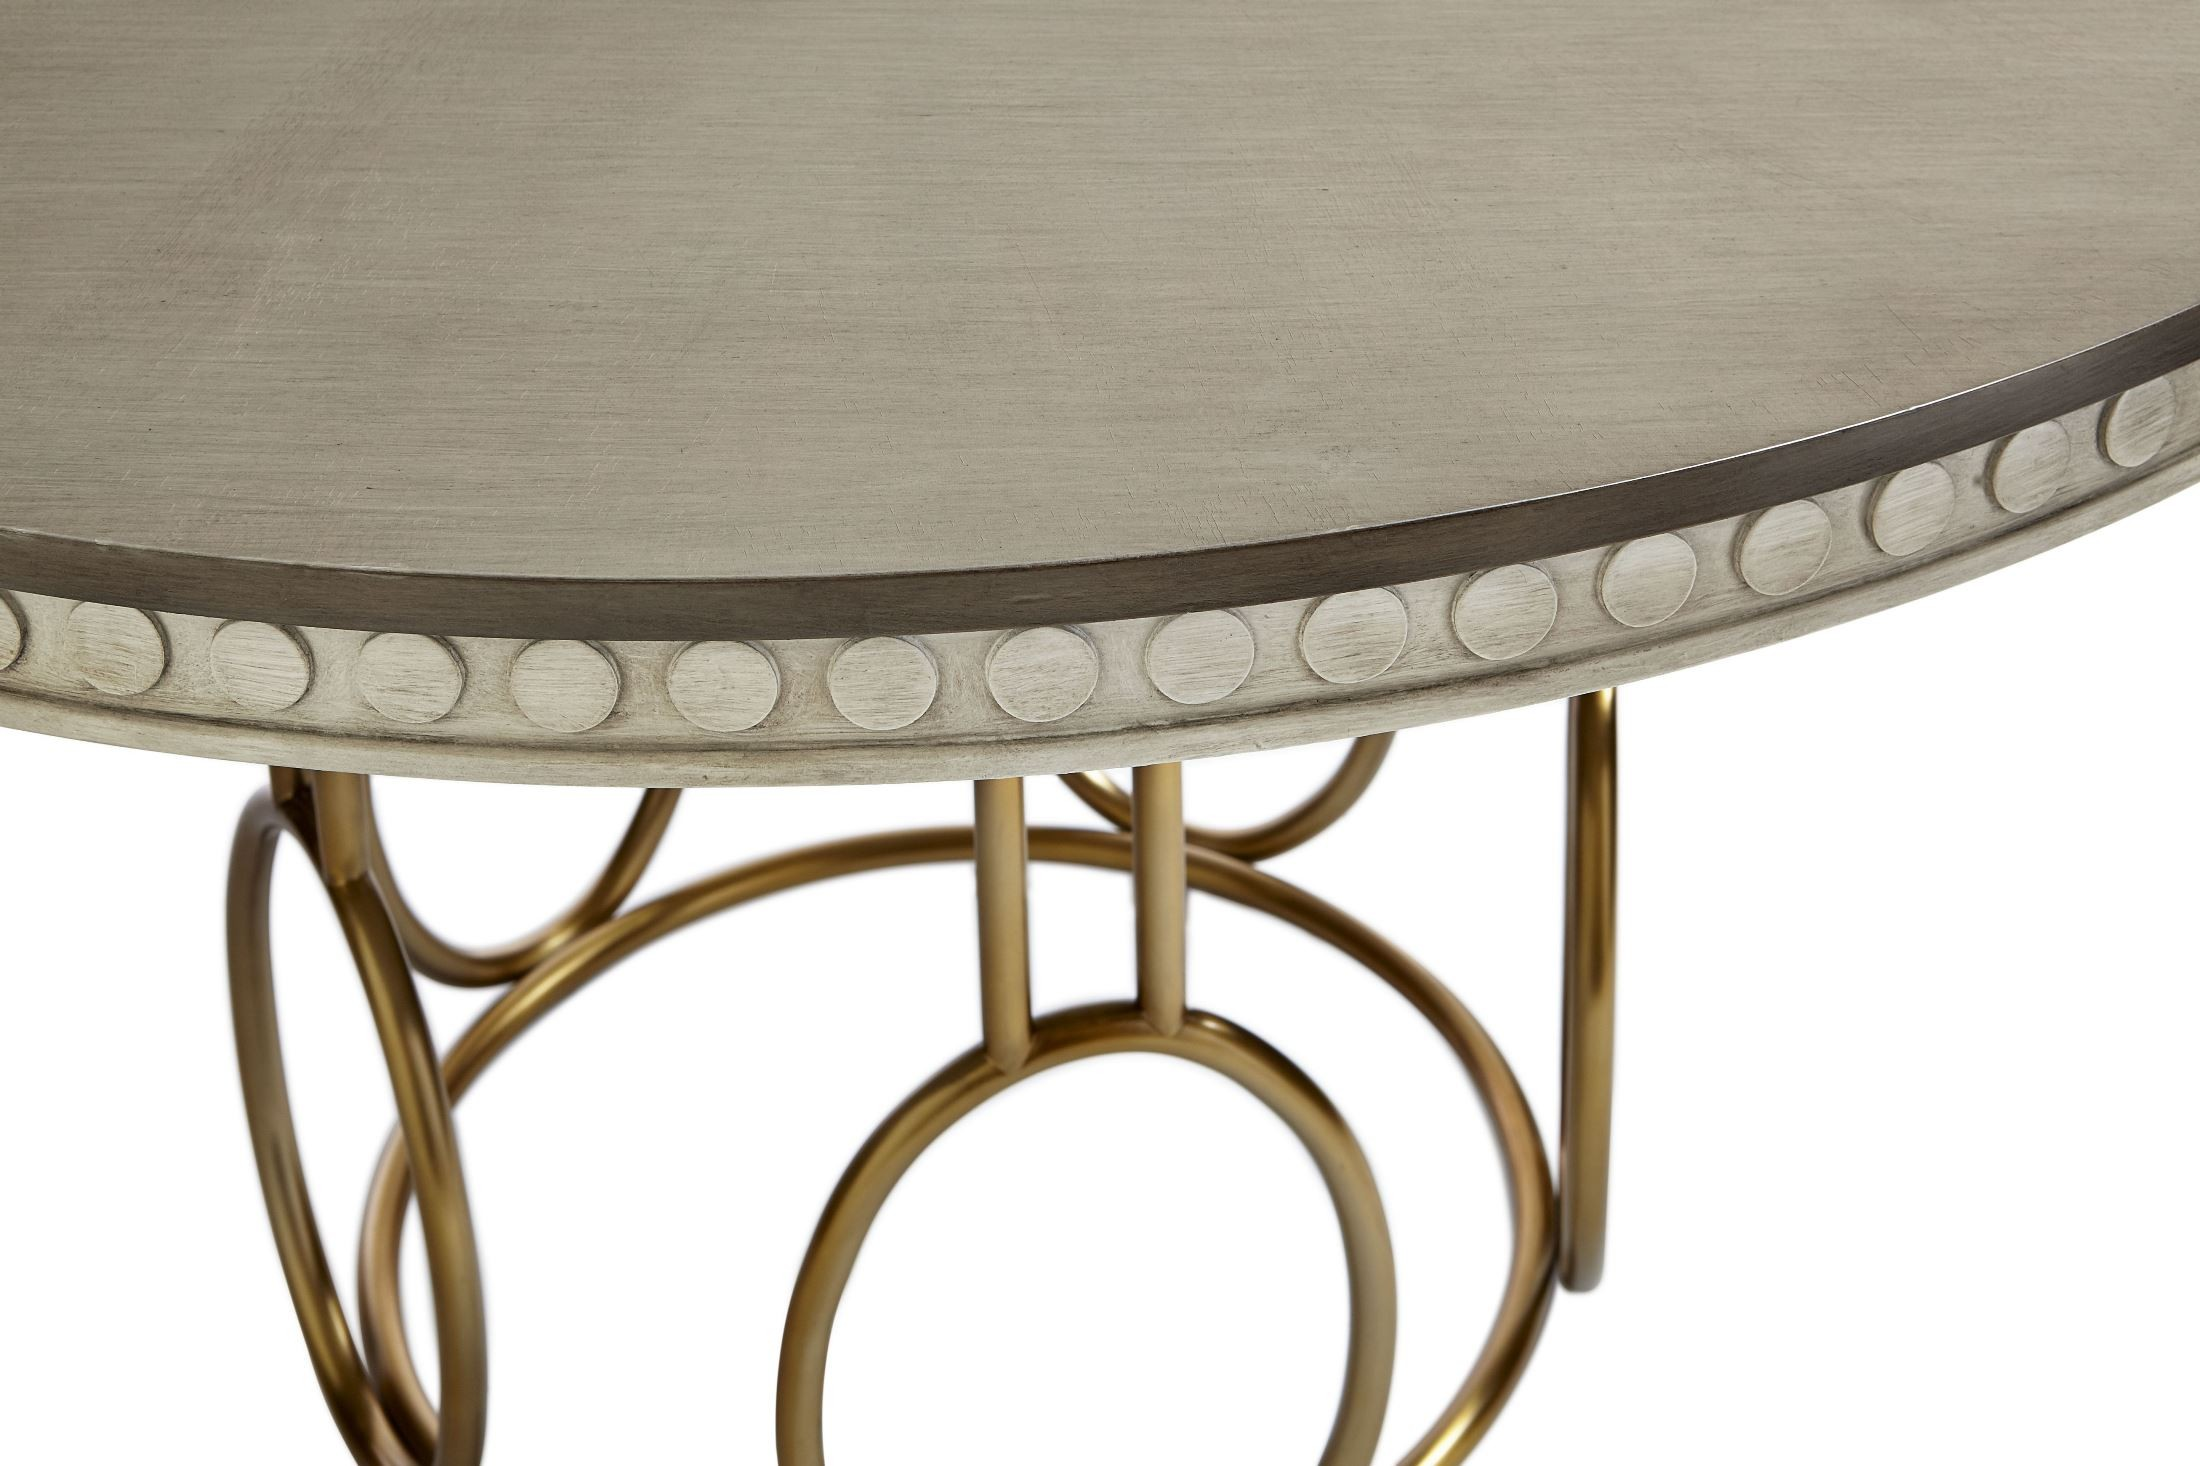 Coastal Living Dining Table: Coastal Living Oasis Oyster Venice Beach Round Dining